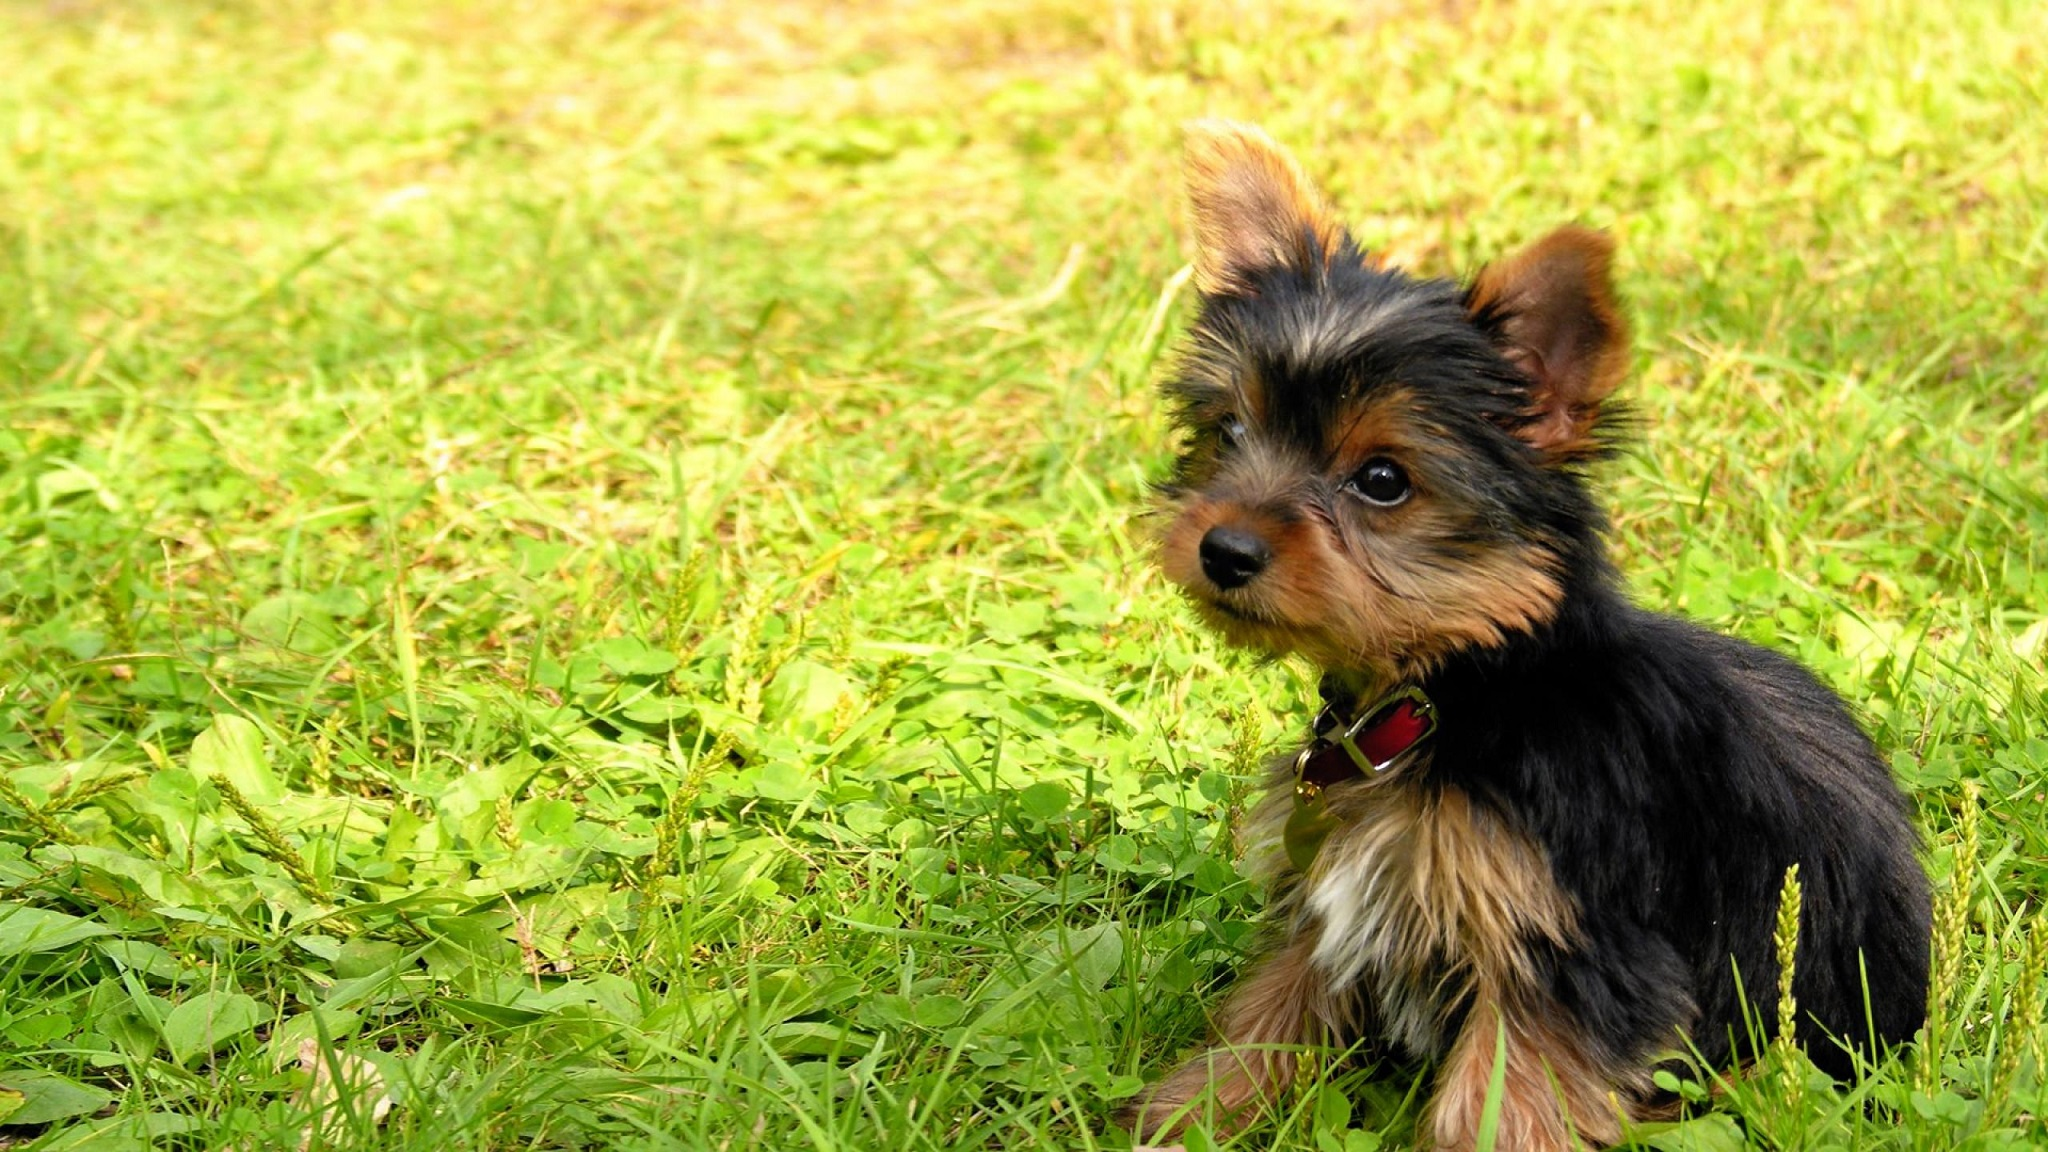 The Breed Is Nicknamed Yorkie Hd Wallpaper Background Image